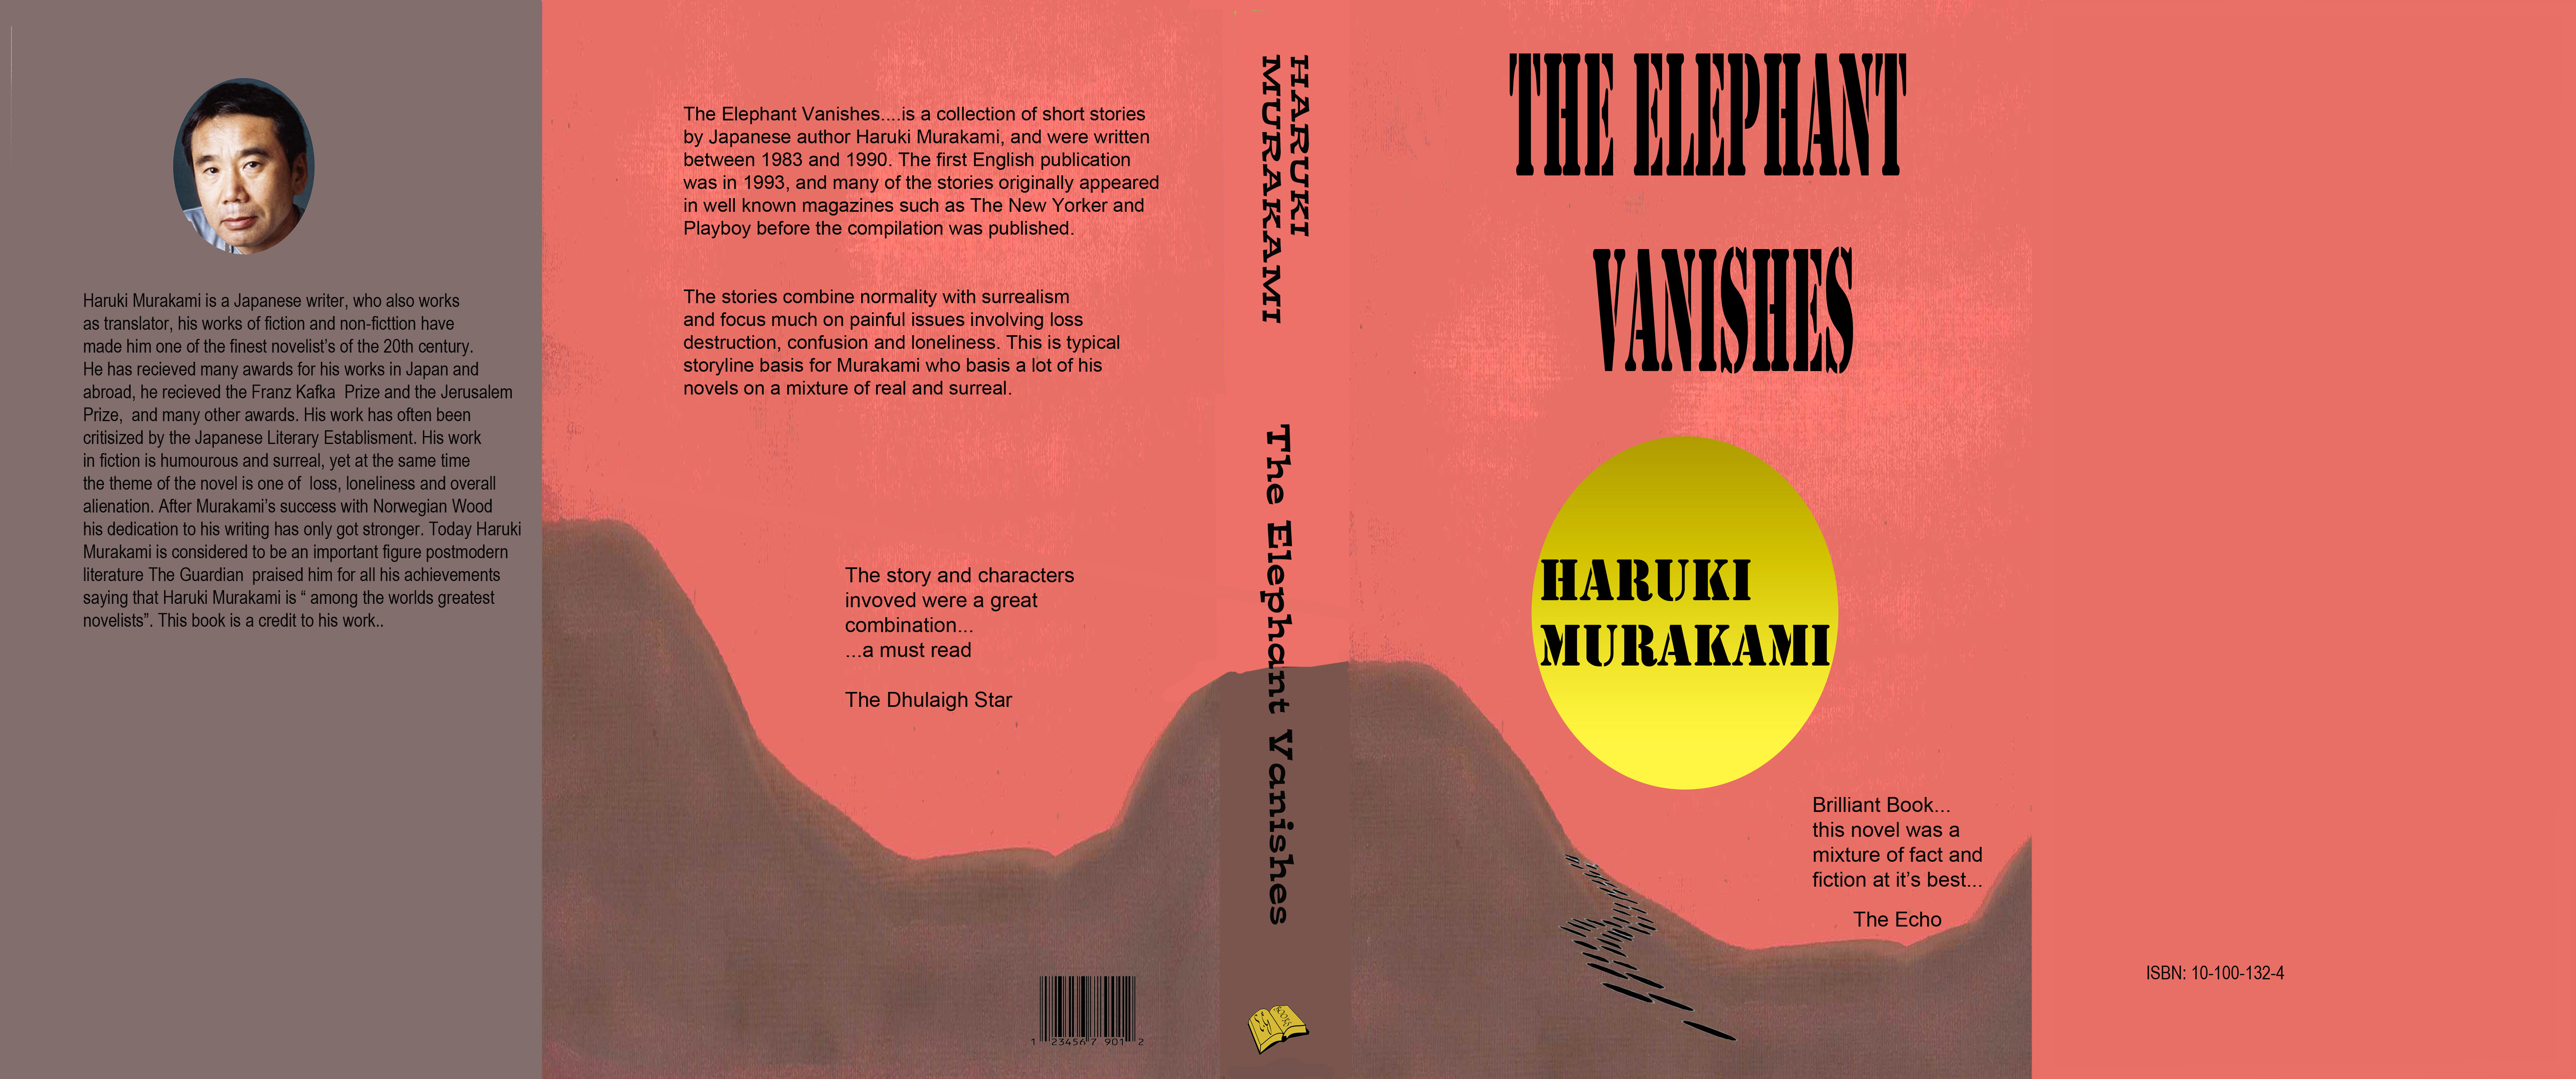 haruki murakami the elephant vanishes pdf